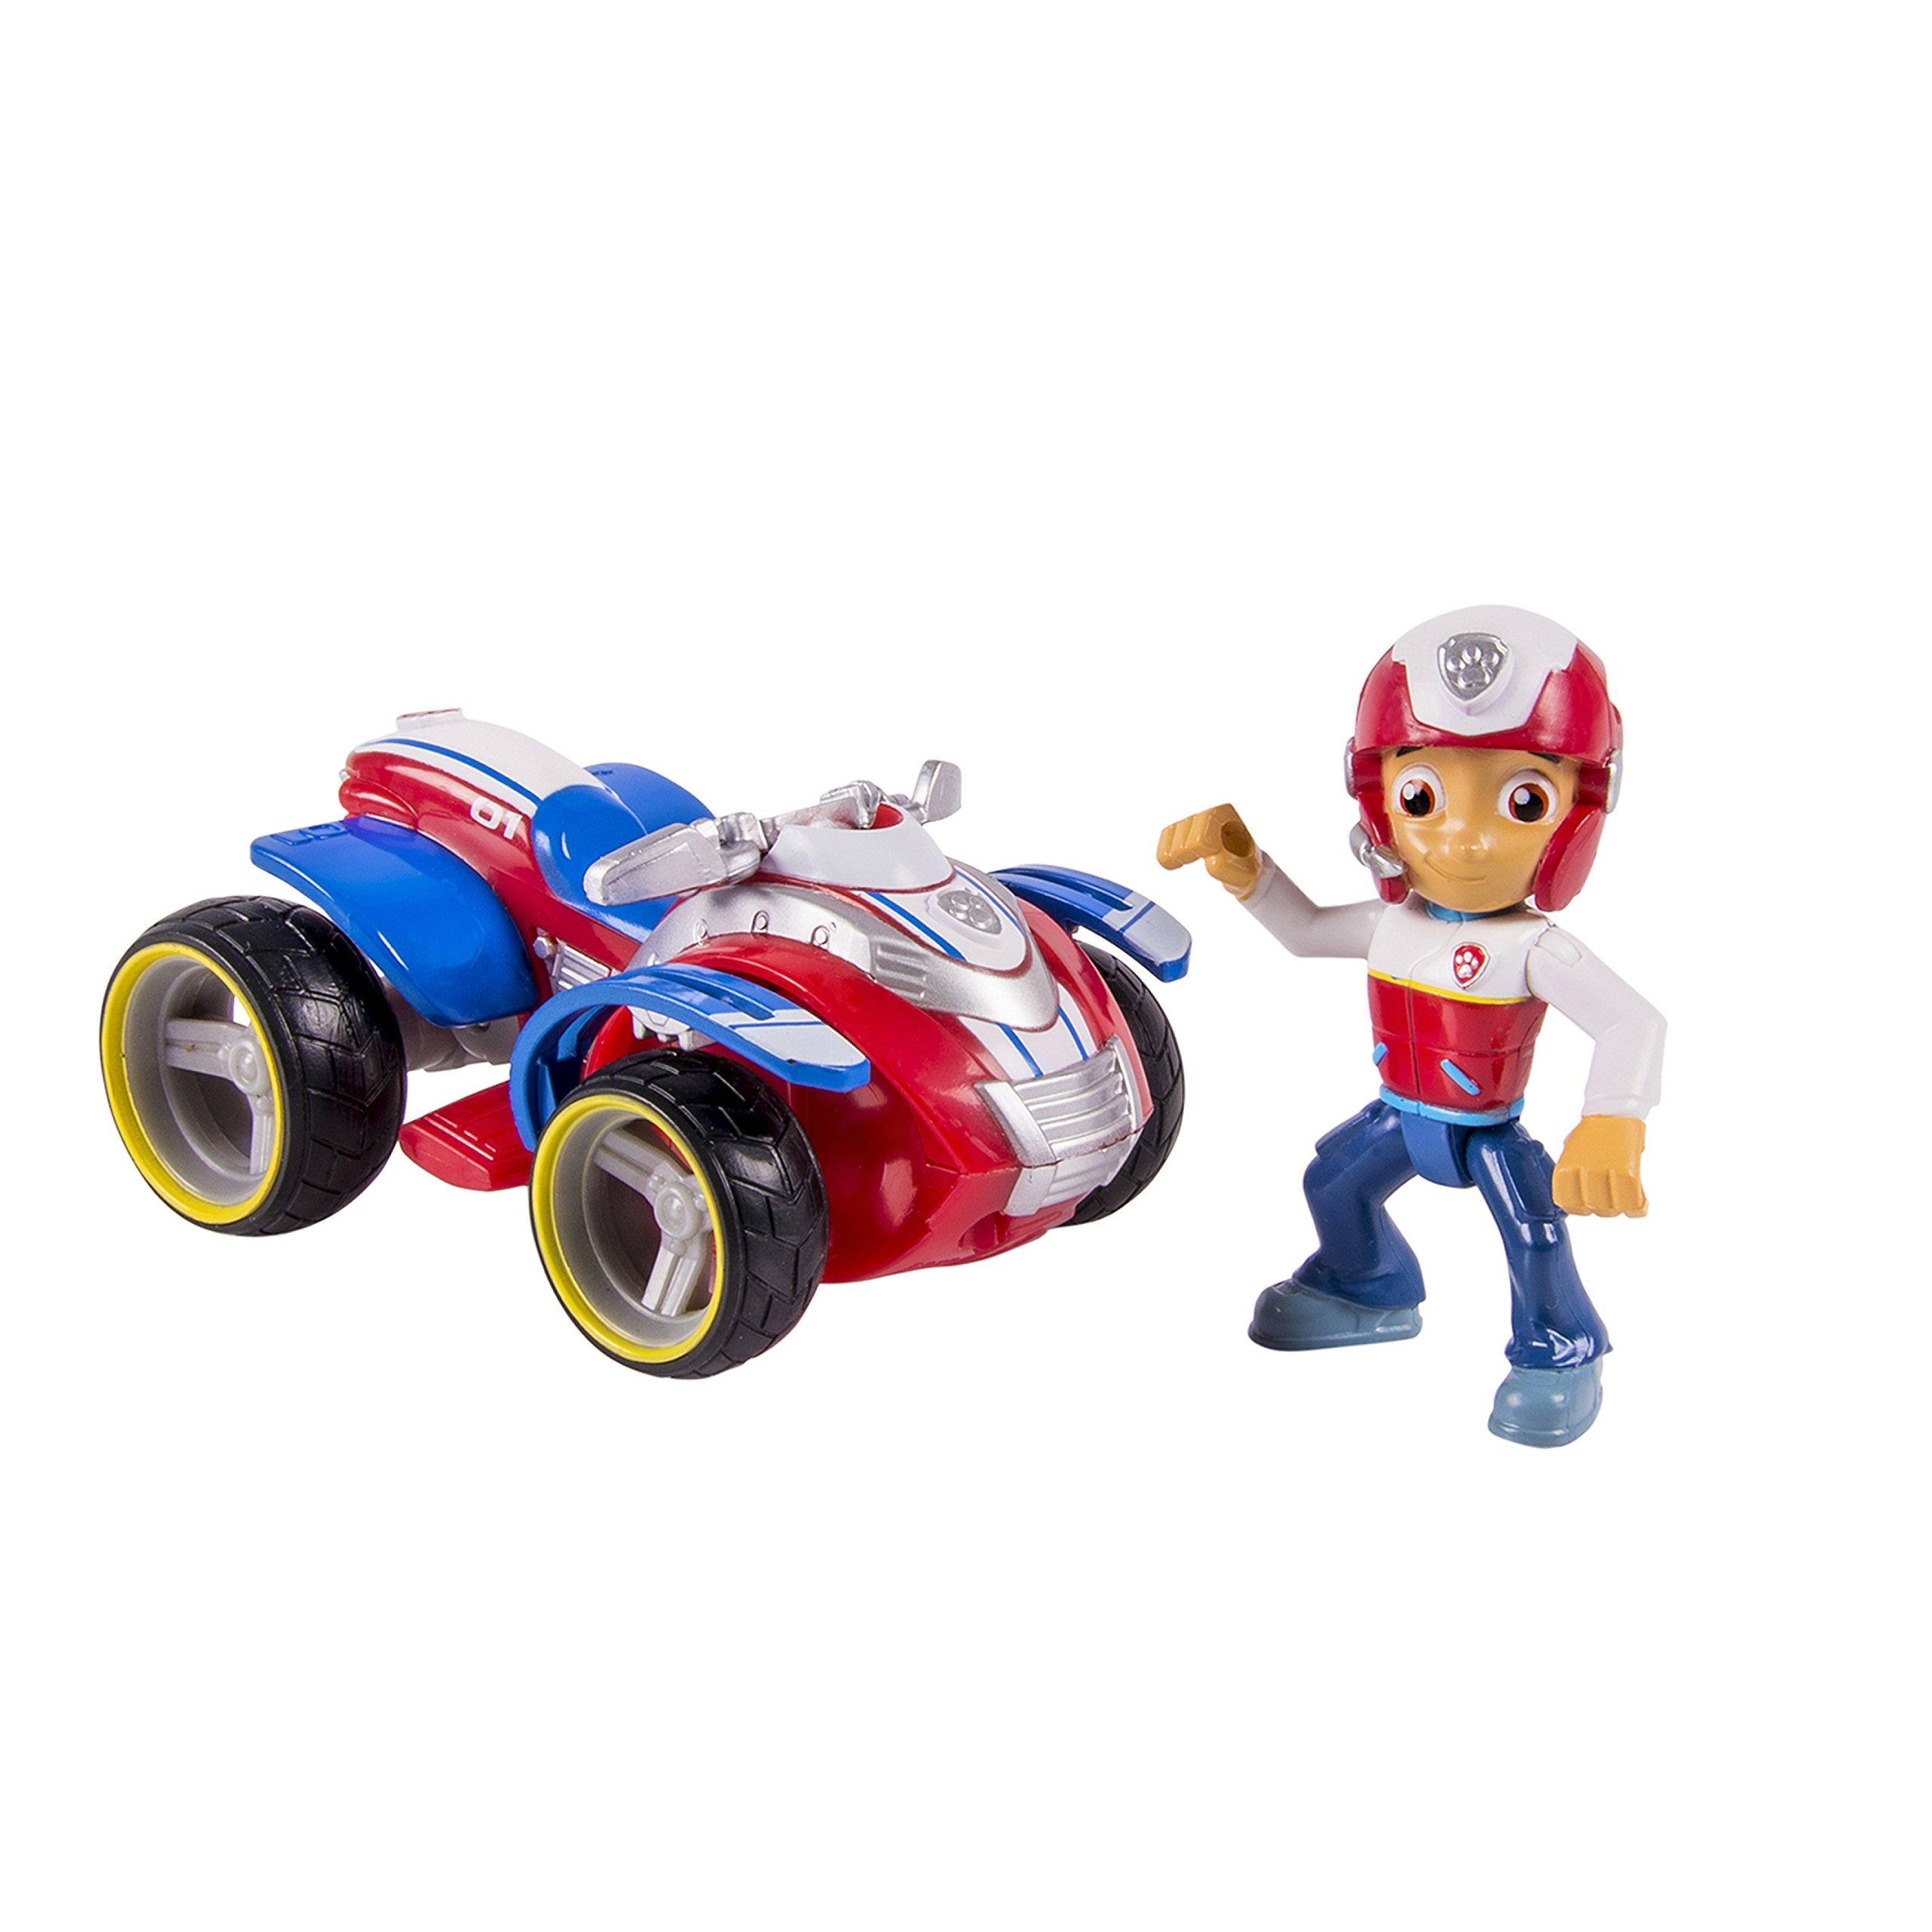 Paw Patrol 20063724-6024006 Ryder's Rescue ATV, Vehicle and Figure, Multicolor